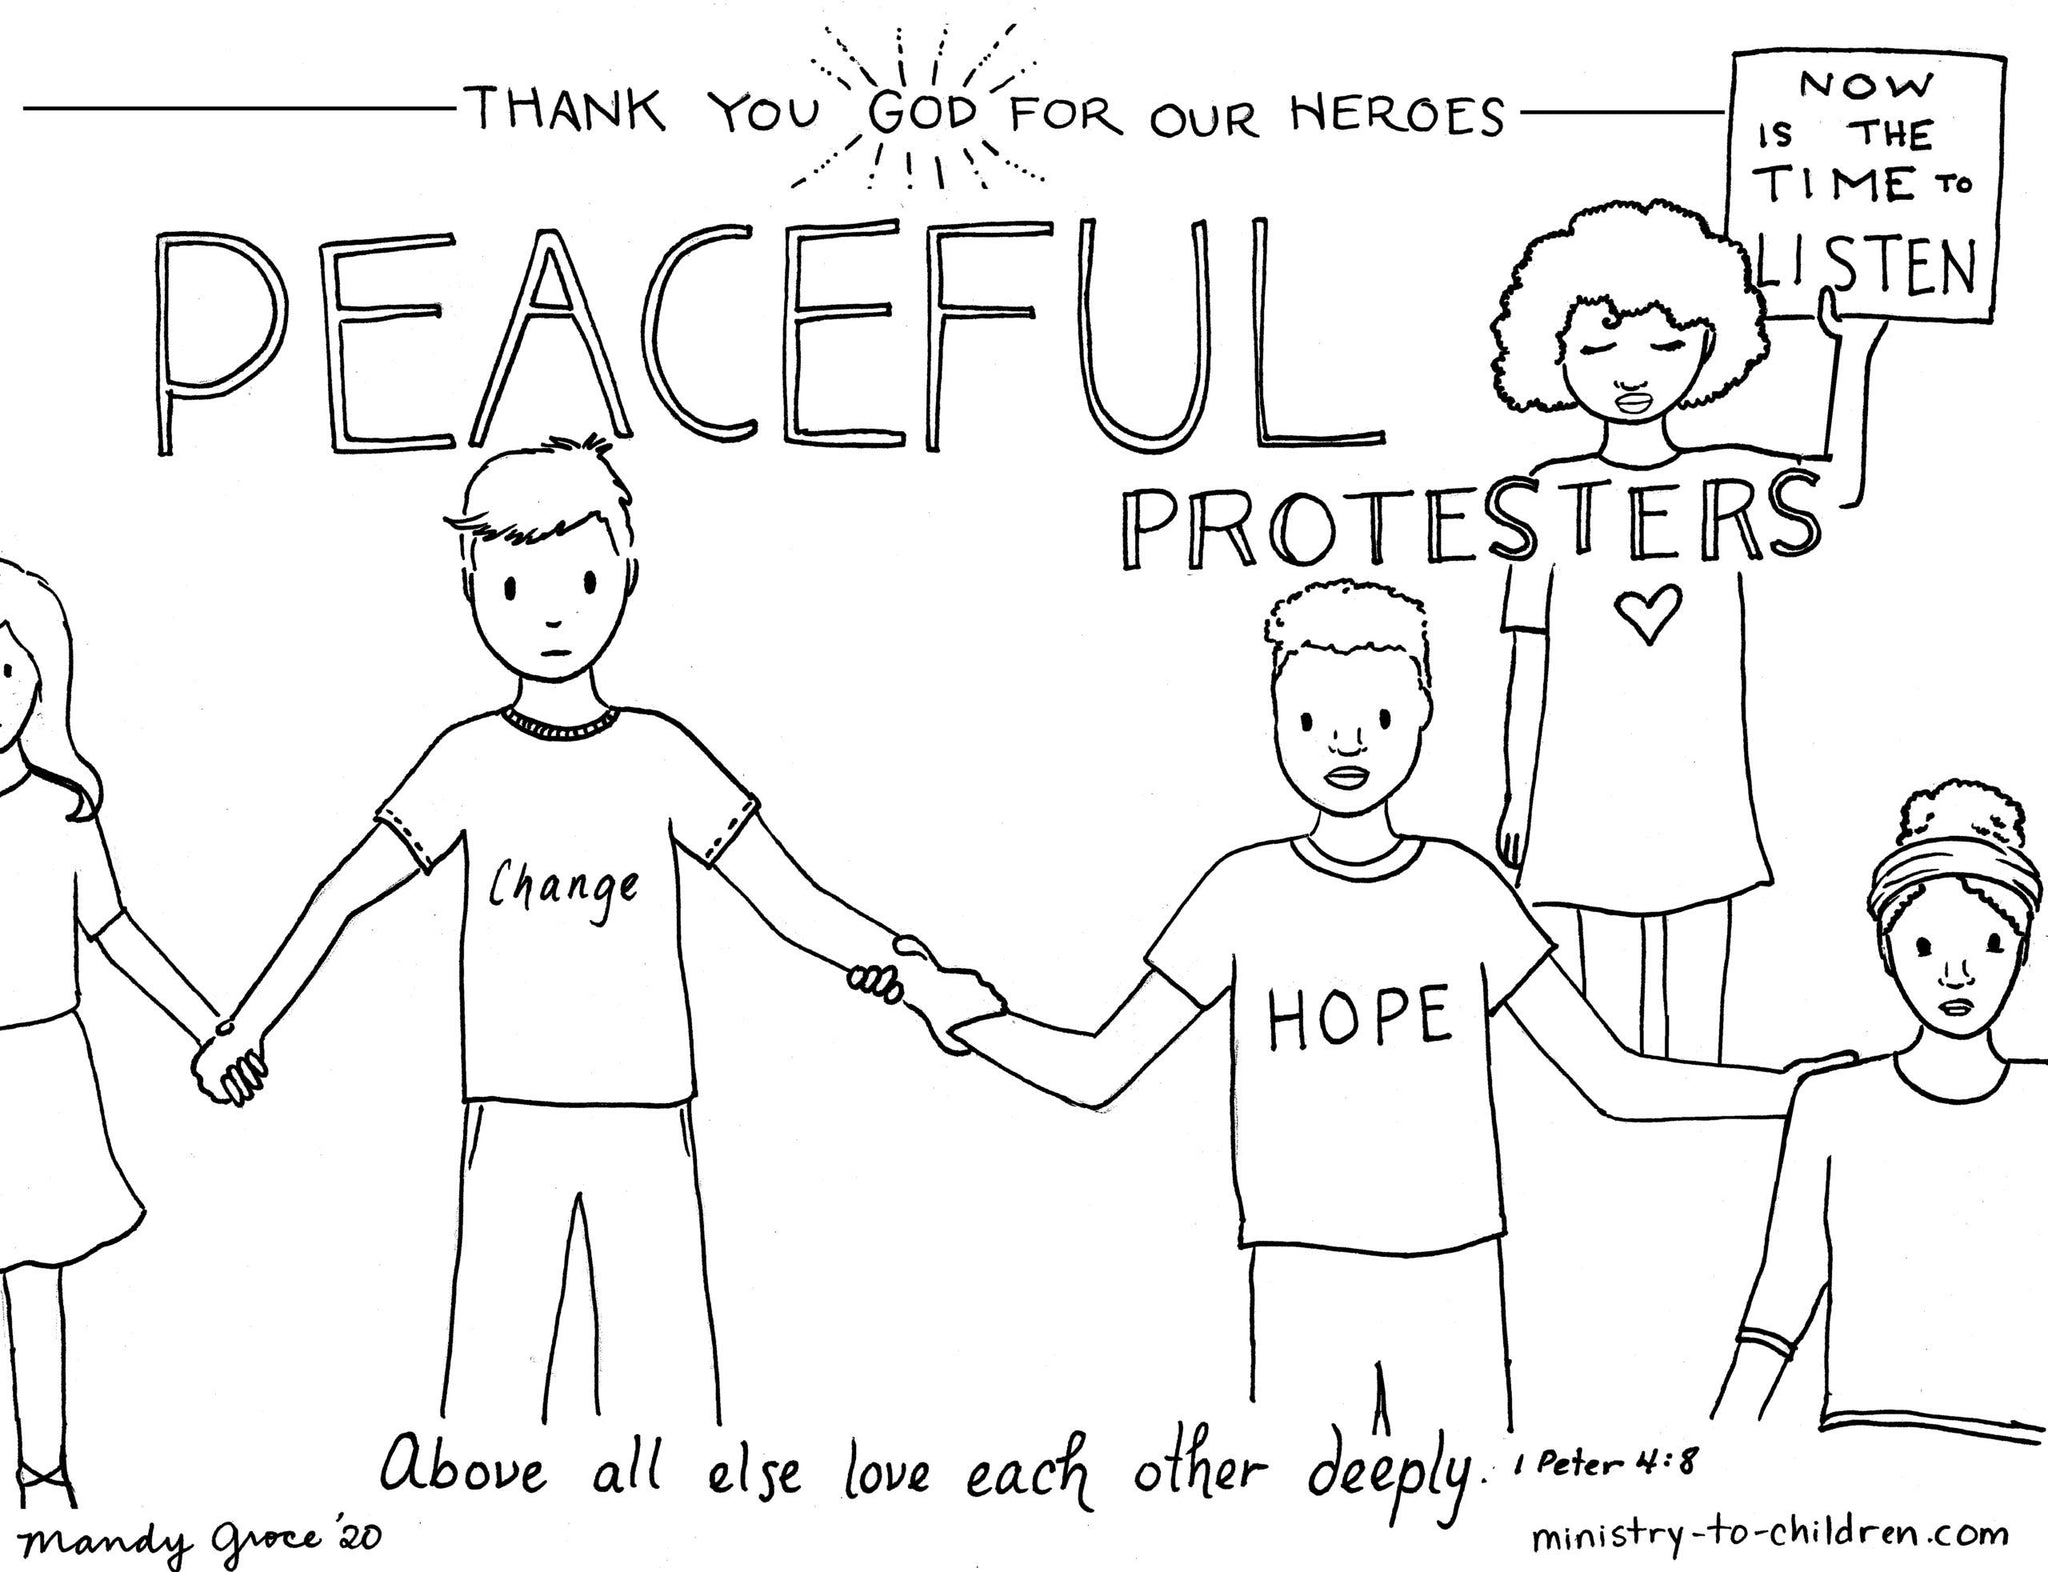 Everyday Heroes Coloring Book (FREE) 8-Page PDF Download